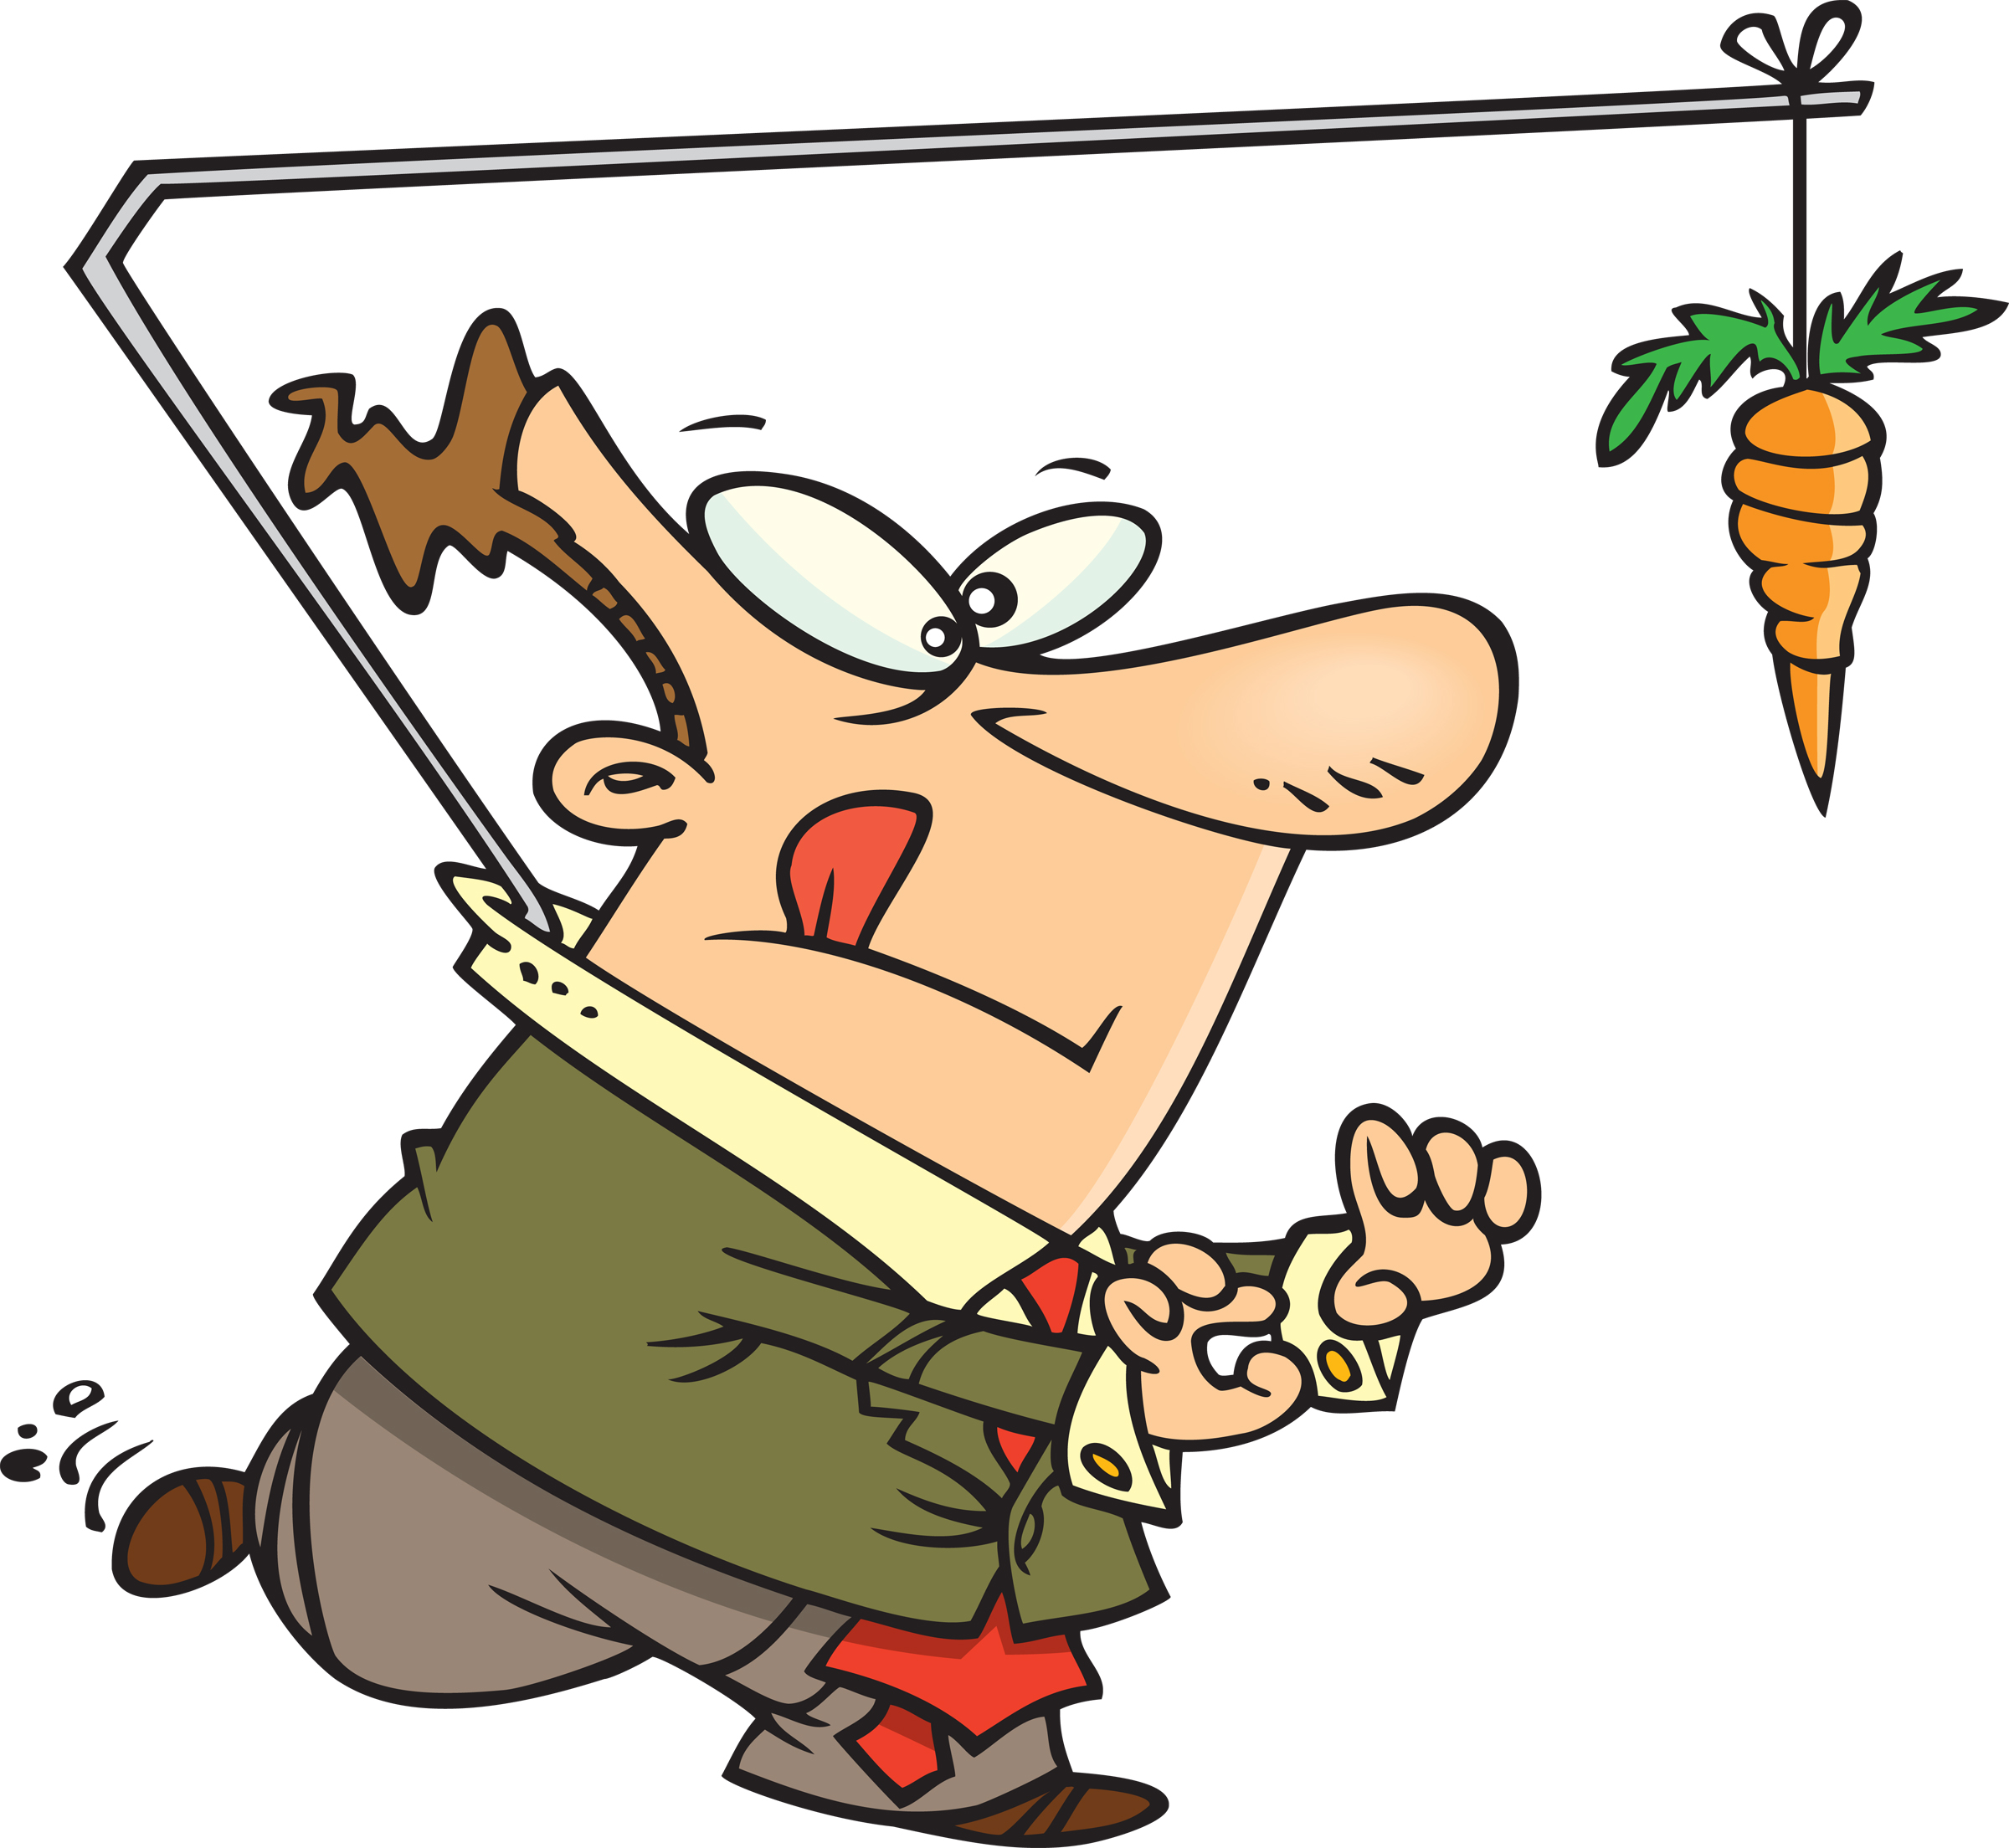 carrot on a stick image